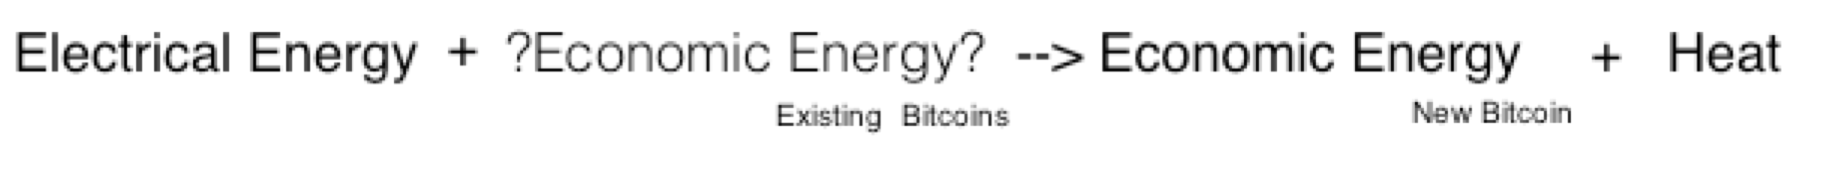 Bitcoin and the Law of Conservation of Energy